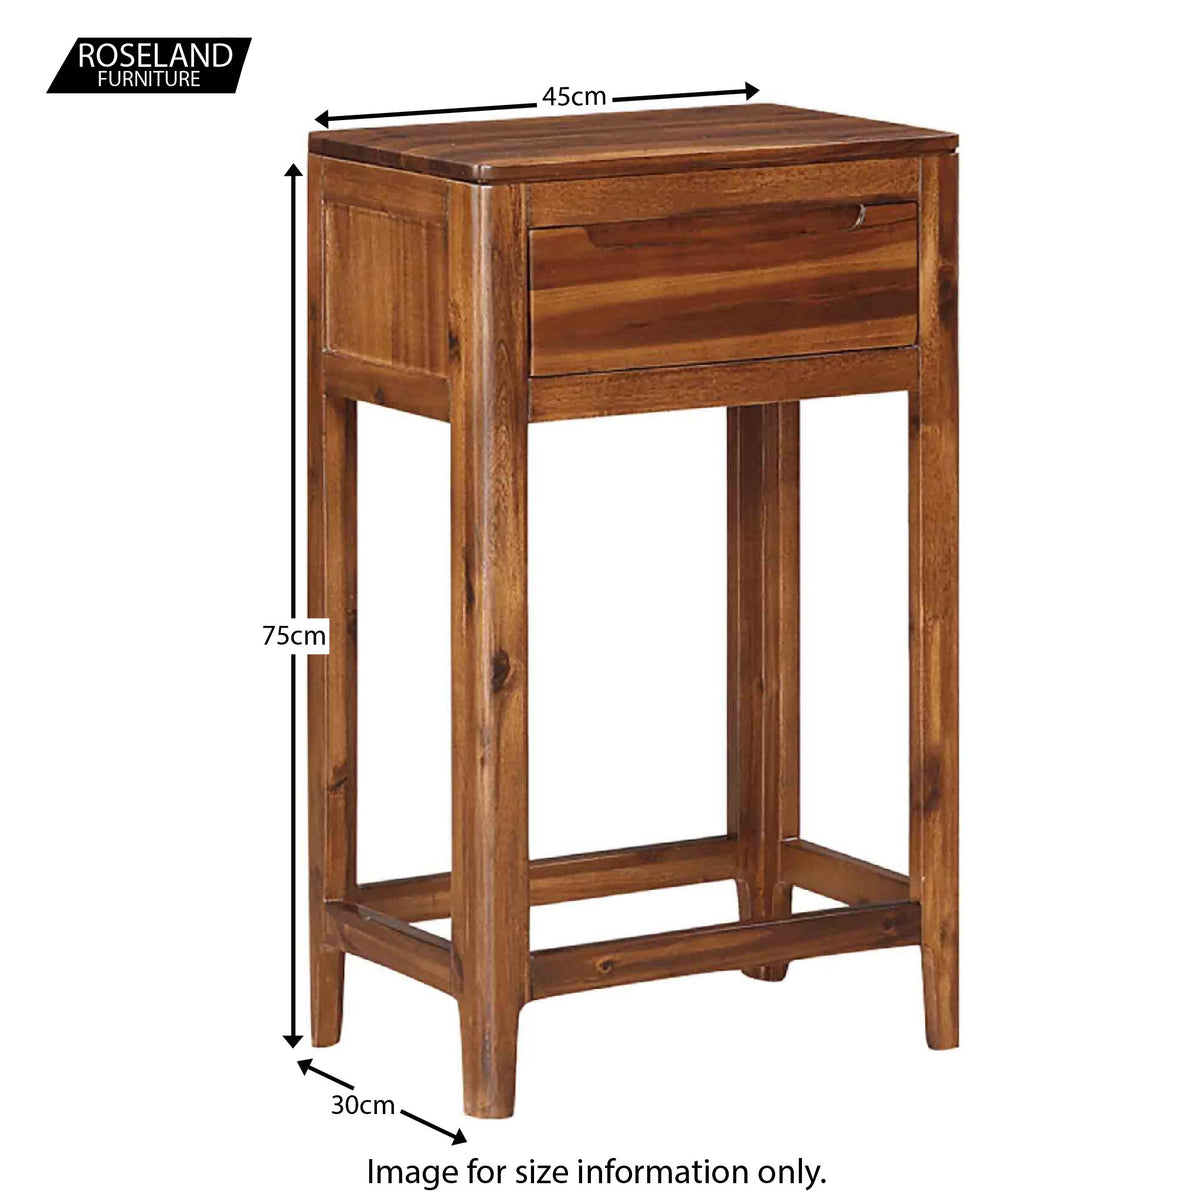 Dunmore Acacia Small Console Hall Table - Size Guide